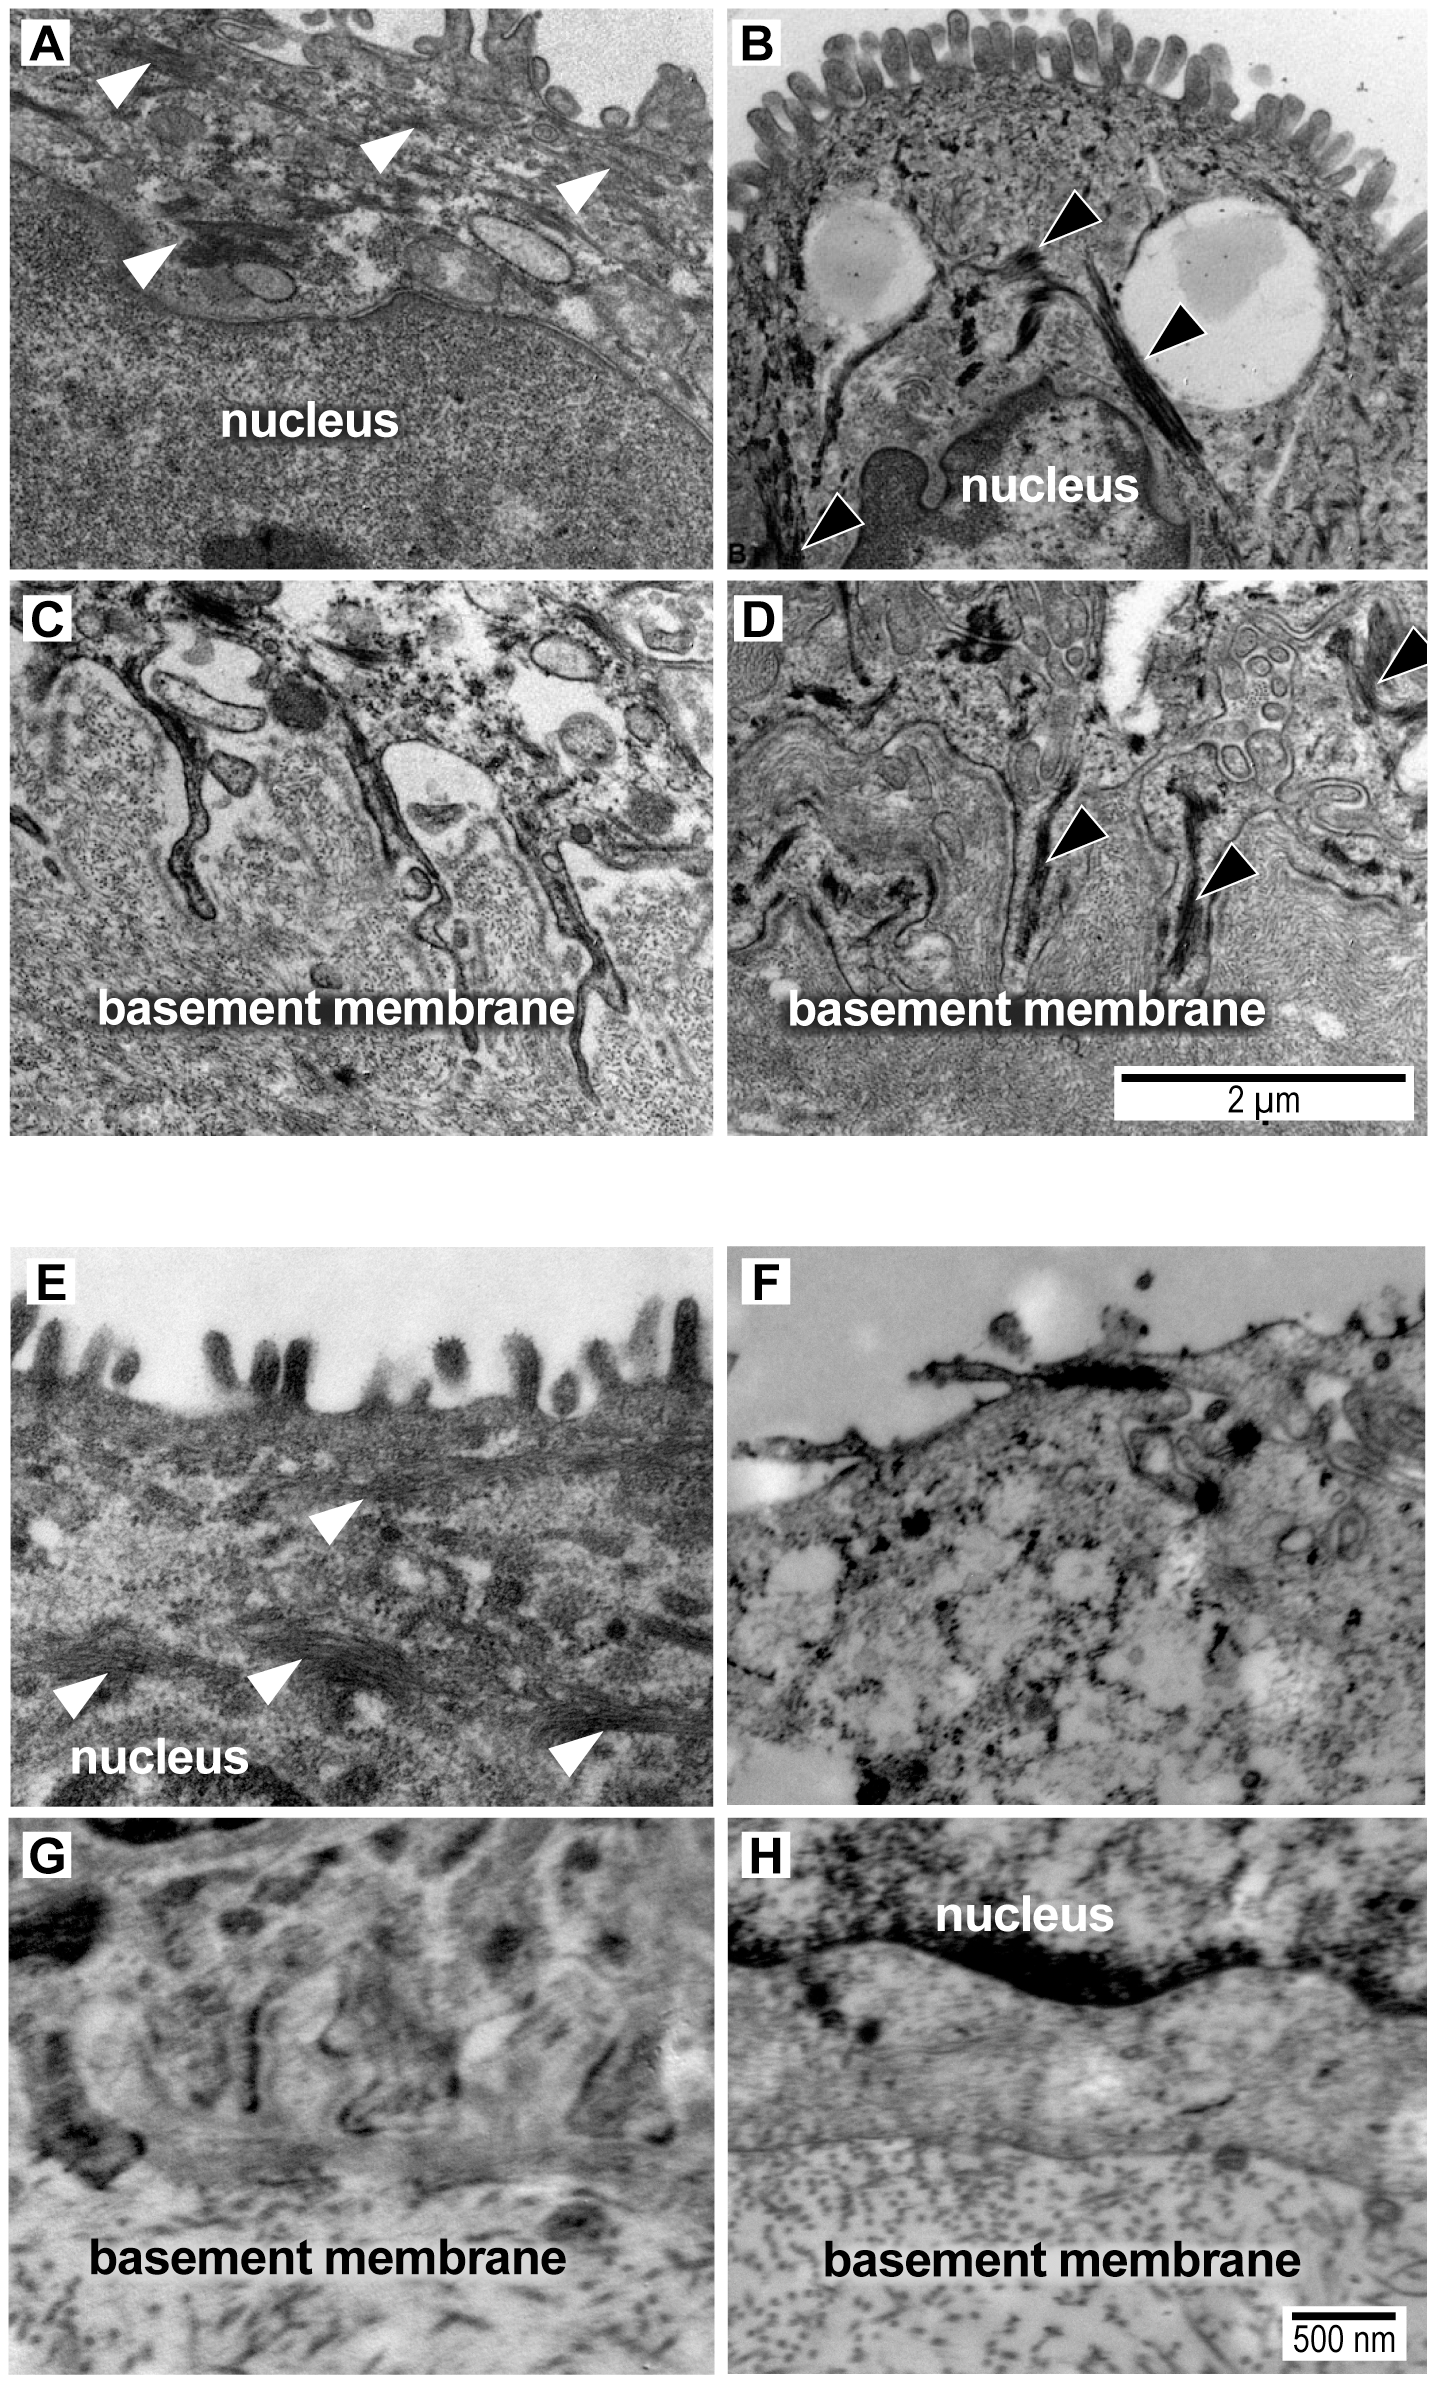 Transmission electron micrograph images of intermediate filaments (white arrowheads) in the cytoplasm and amnion foot processes from a macaque saline control (A,C) and macaque GBS sample (B,D) and from a woman at term undergoing cesarean section prior to labor (E,G) and another woman after PPROM/preterm birth (F,H).